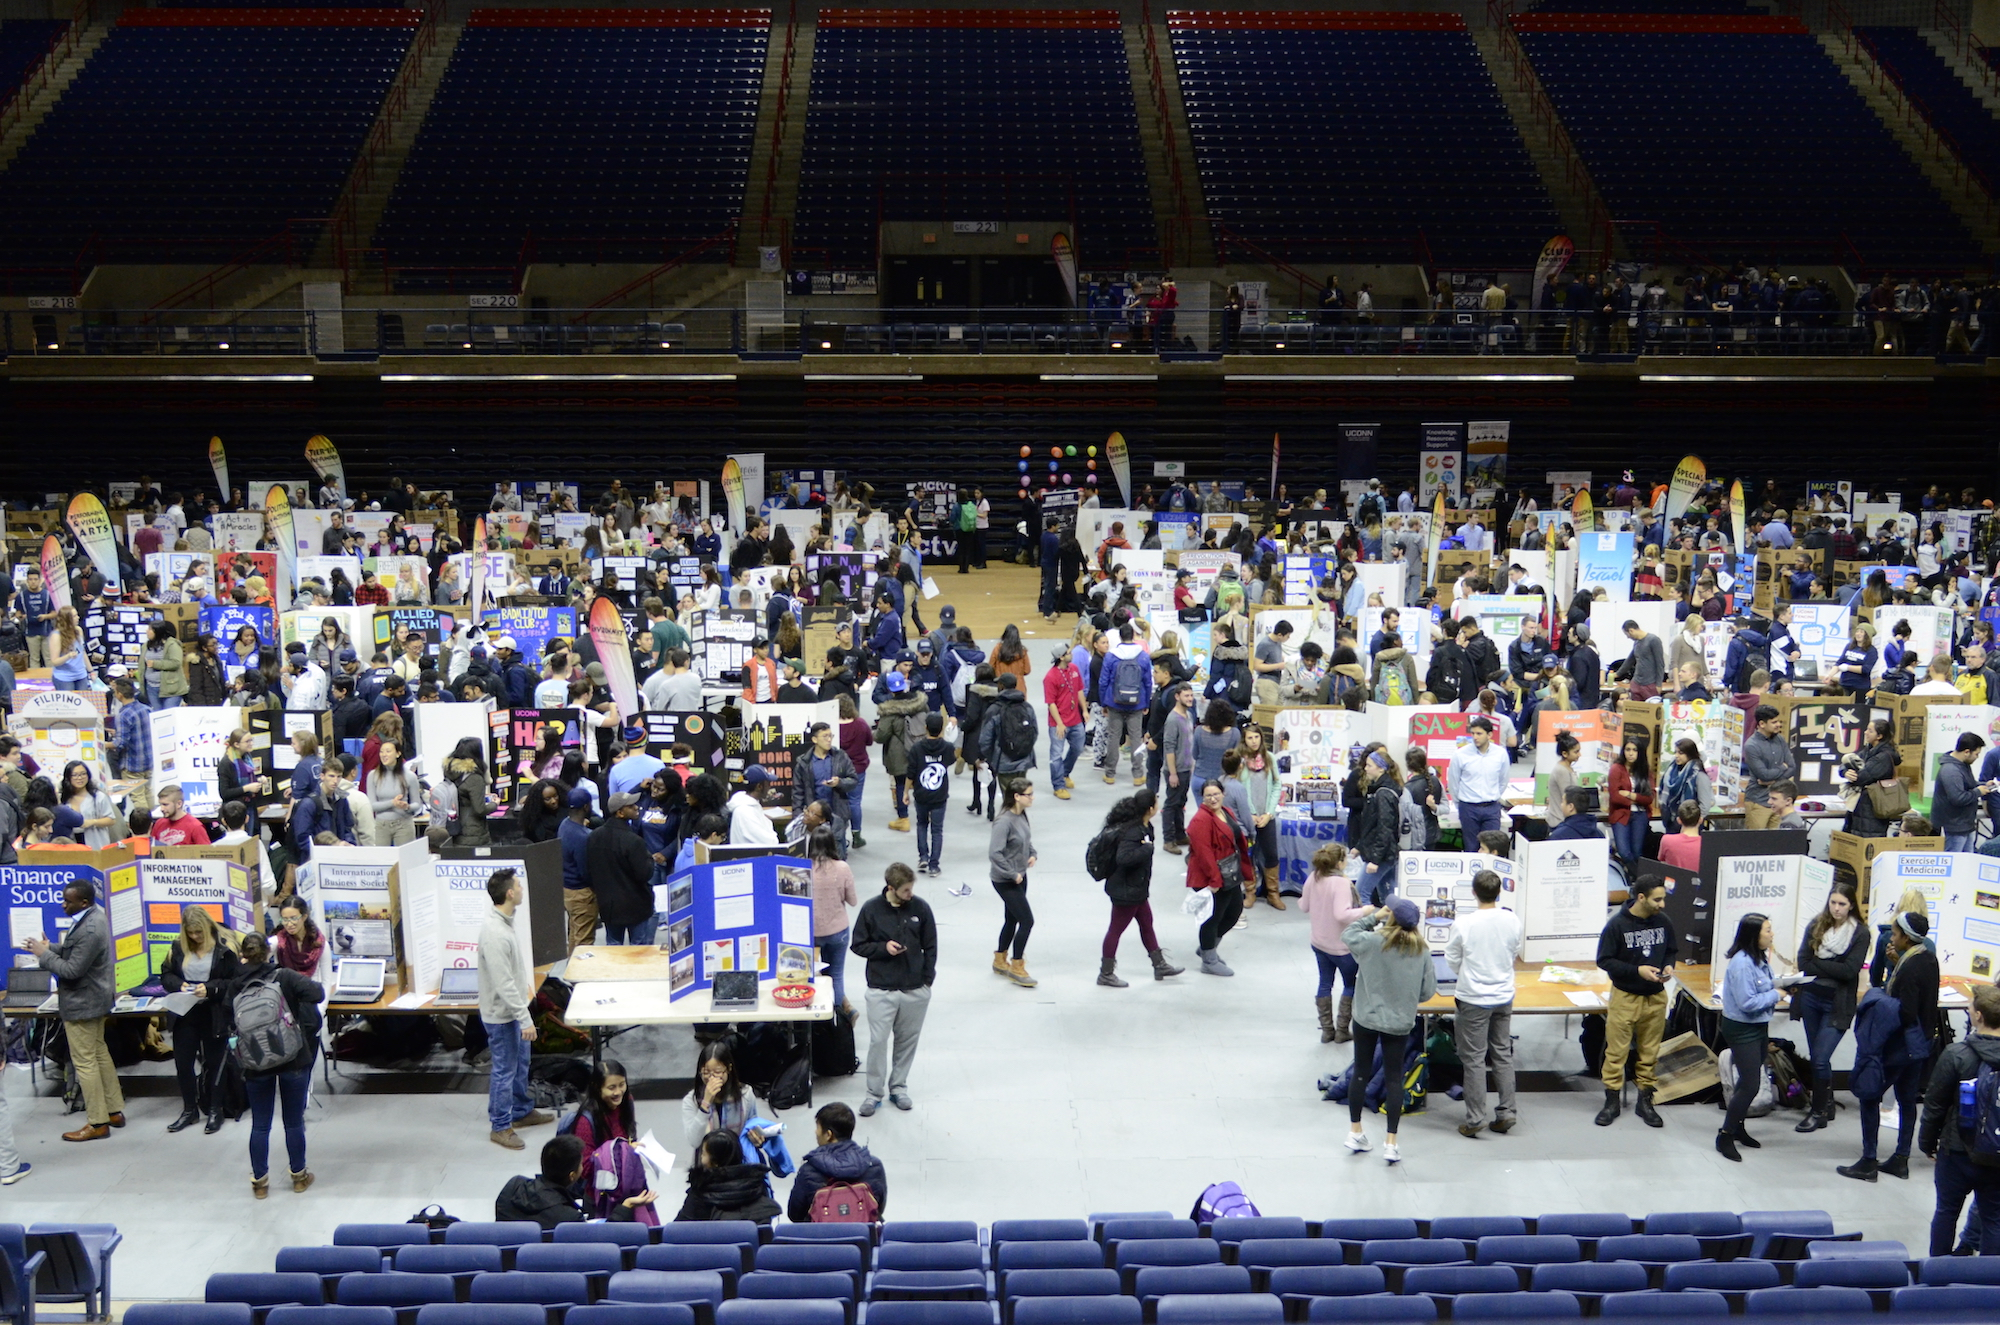 The spring semester Involvement Fair took place on Jan. 25, 2017. There are over 600 clubs and organizations for students to join at UConn. (Charlotte Lao/The Daily Campus)